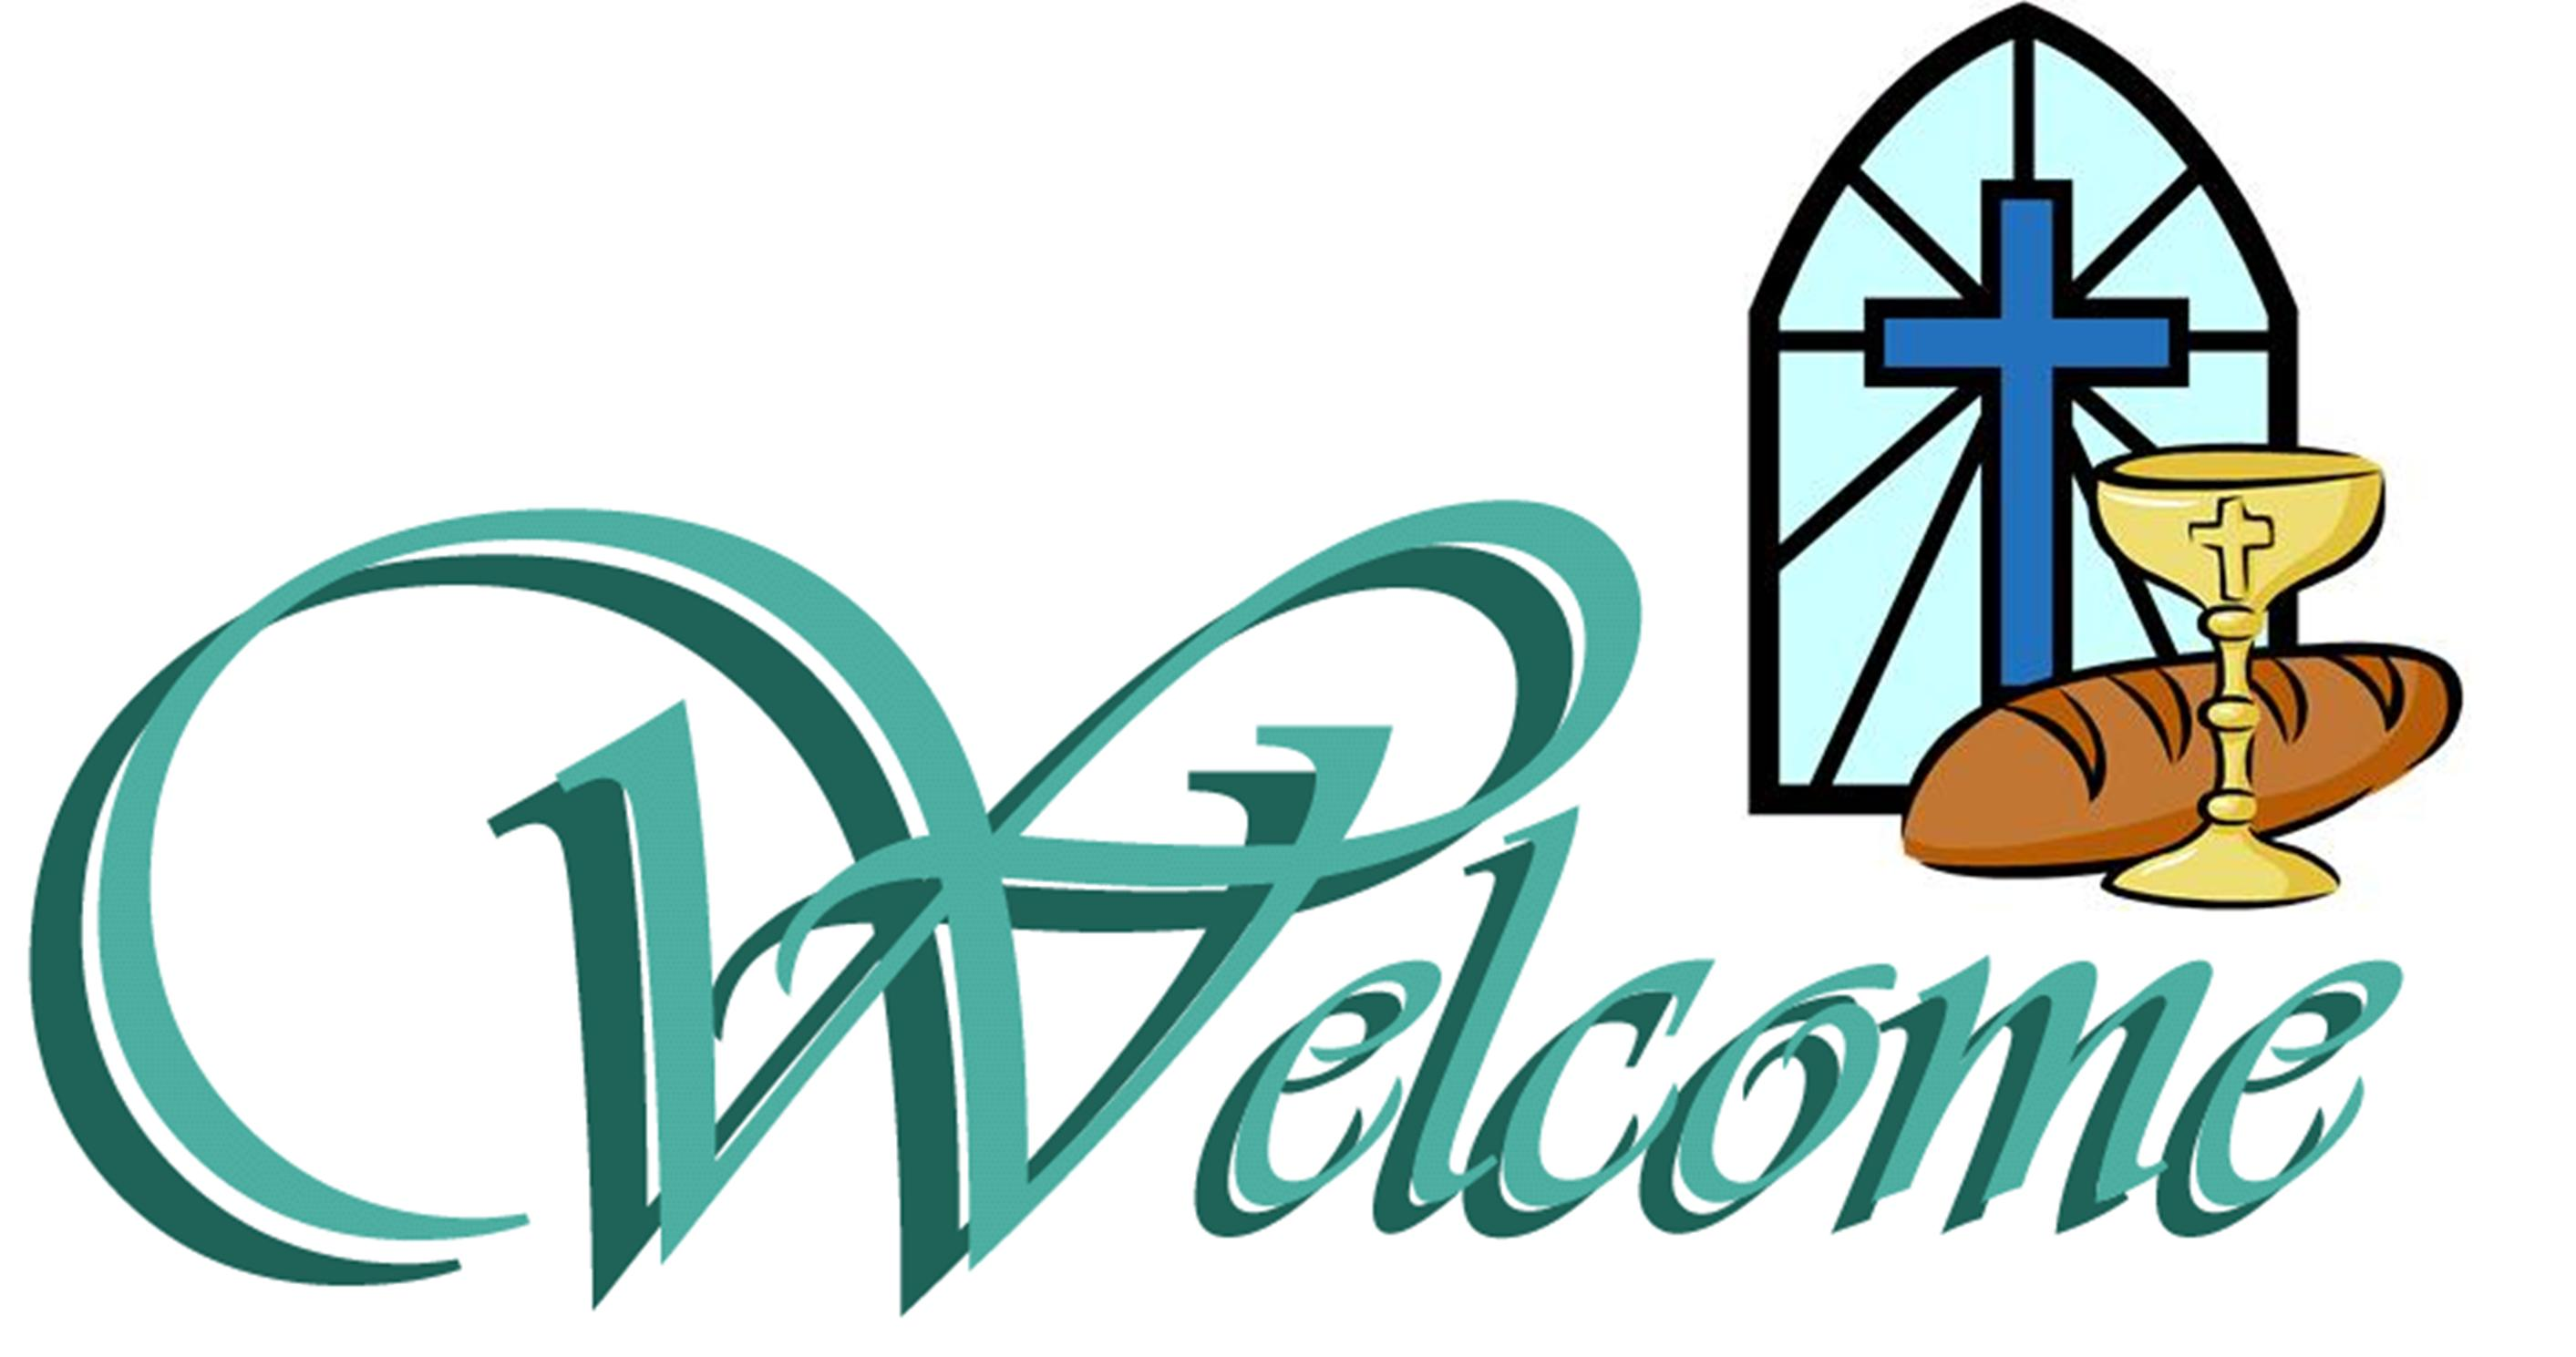 our lady of angels catholic church welcome newcomers rh ourladyofangelscc org Church Sayings Clip Art Christian Clip Art for Church Bulletins